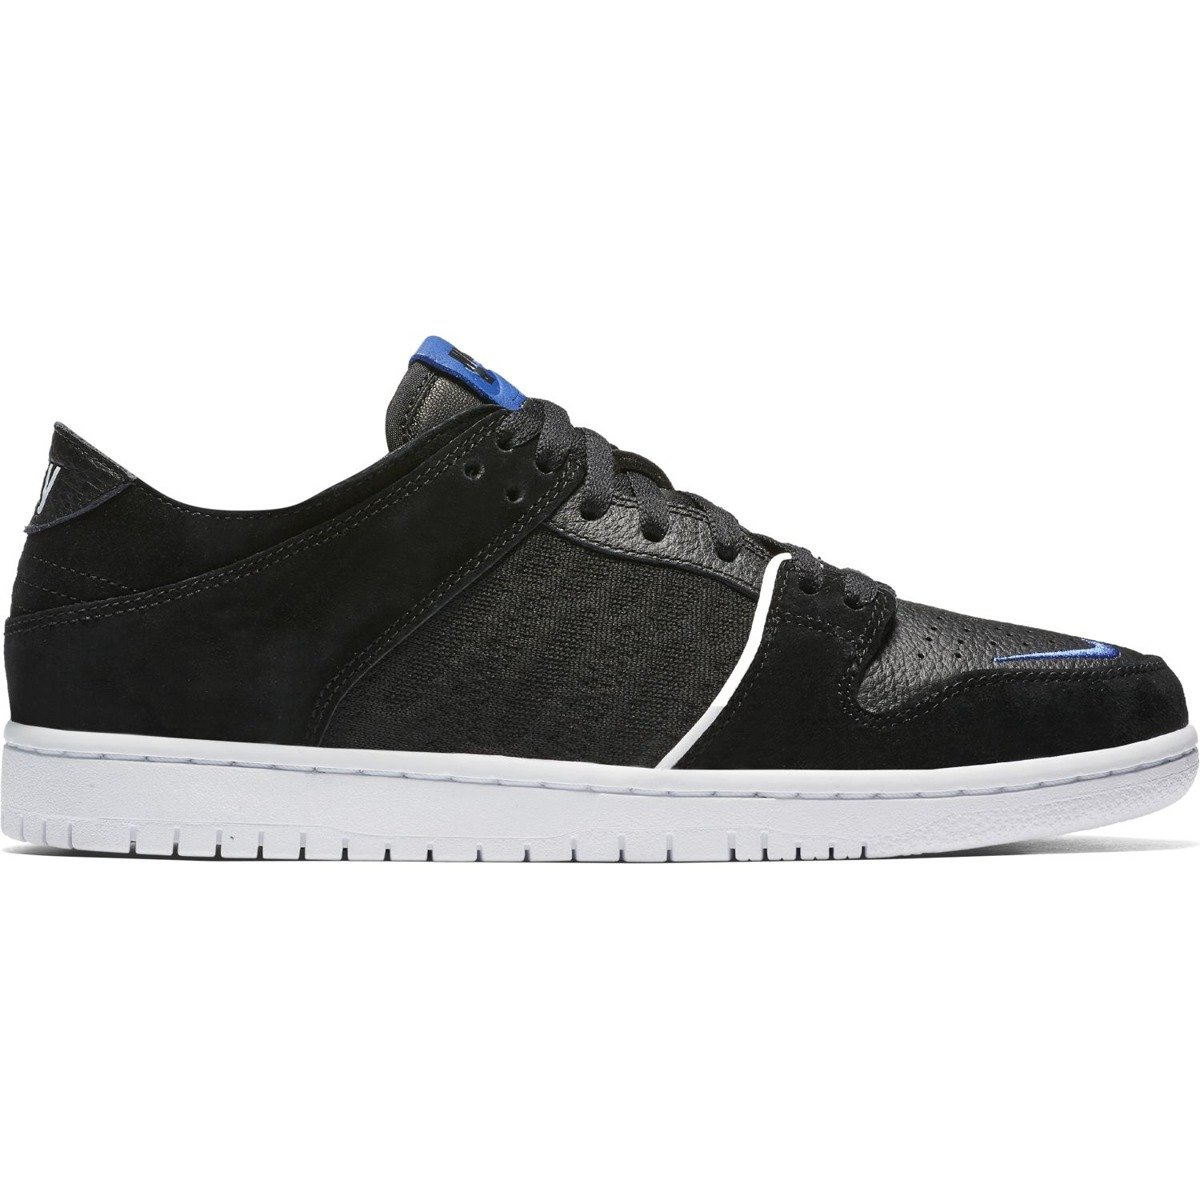 sports shoes b7391 85ec7 shoes nike sb zoom dunk low pro qs blackgame royal-white  Shoes  Nike SB  SALE  Sale 50% -70%  Shoes Brands  Nike SB Buty  Nike SB  Nike Fri.